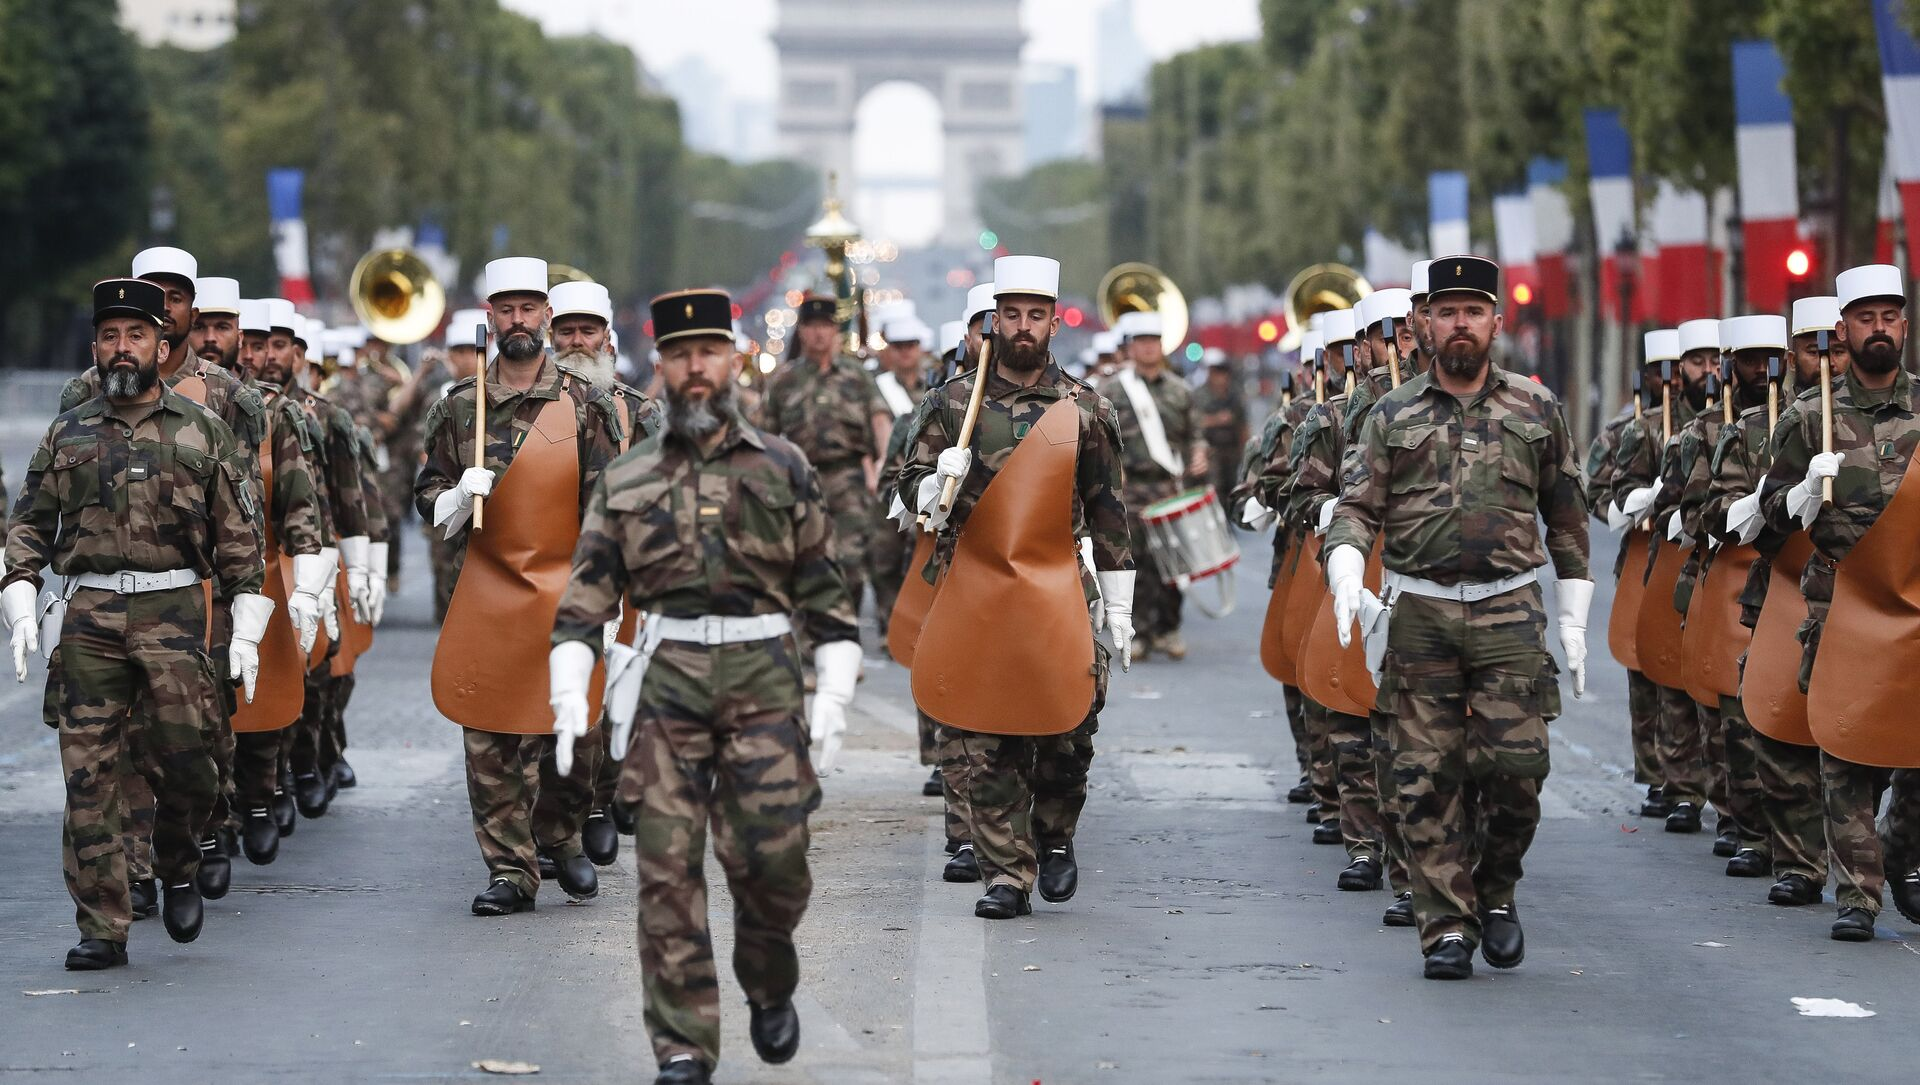 Soldiers of the French Foreign Legion parade on the Champs Elysees avenue during a rehearsal for Bastille Day, early Wednesday, July 11, 2018 in Paris - Sputnik Italia, 1920, 30.04.2021